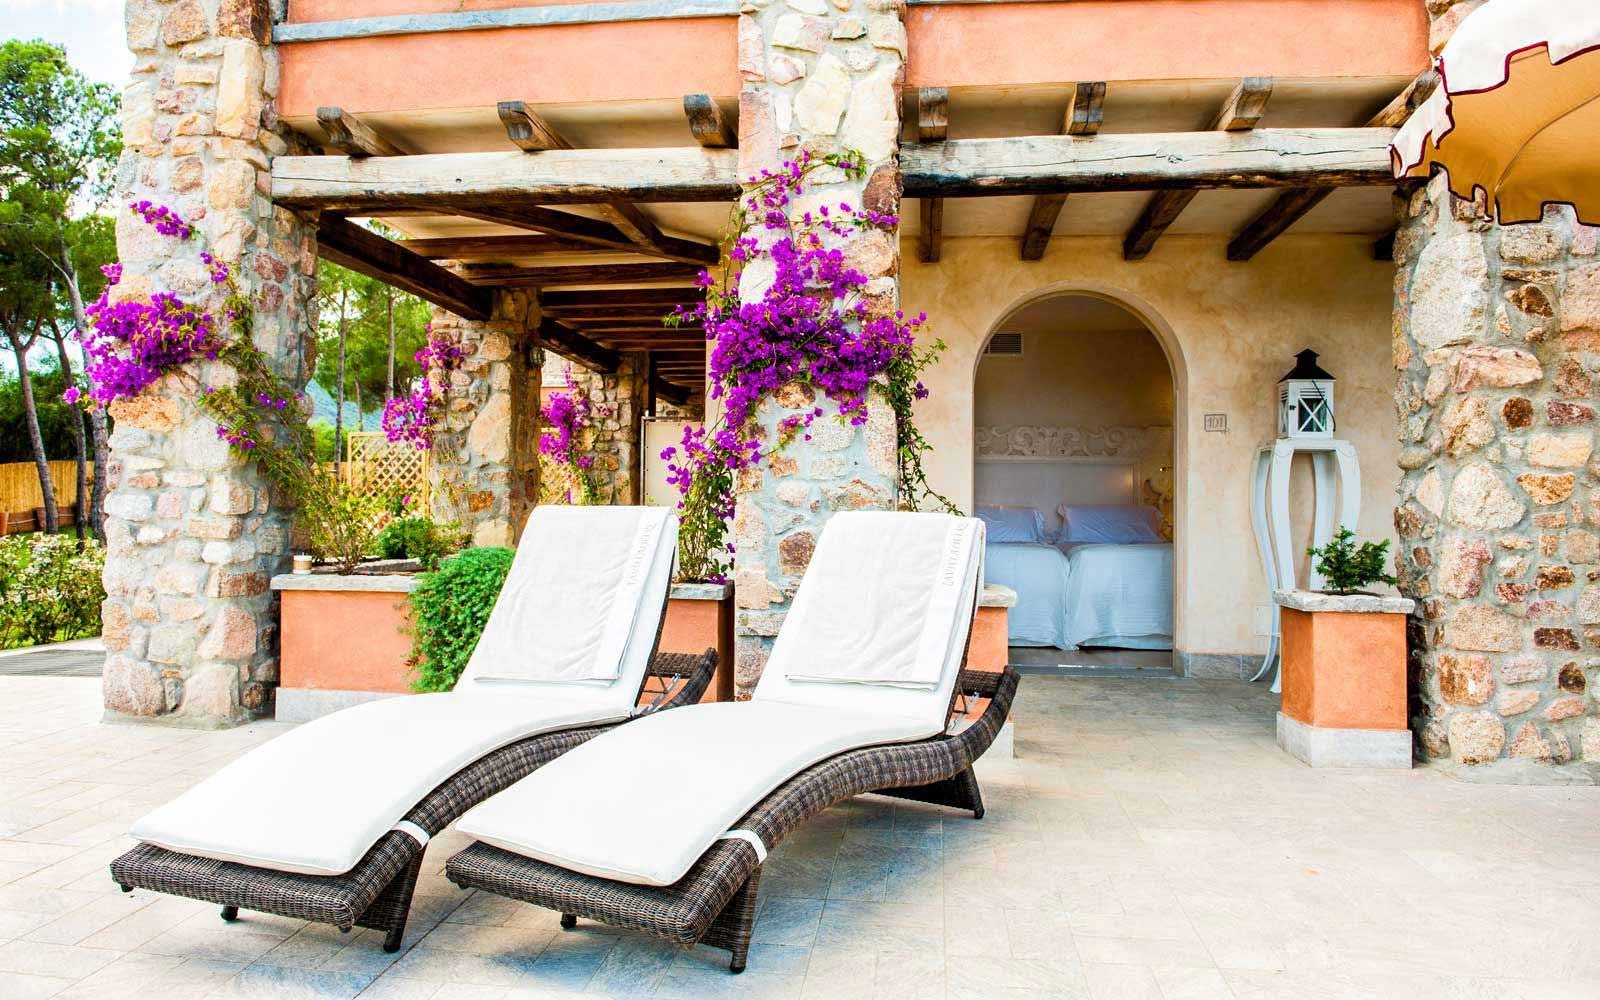 Relax at the Hotel Villa del Re